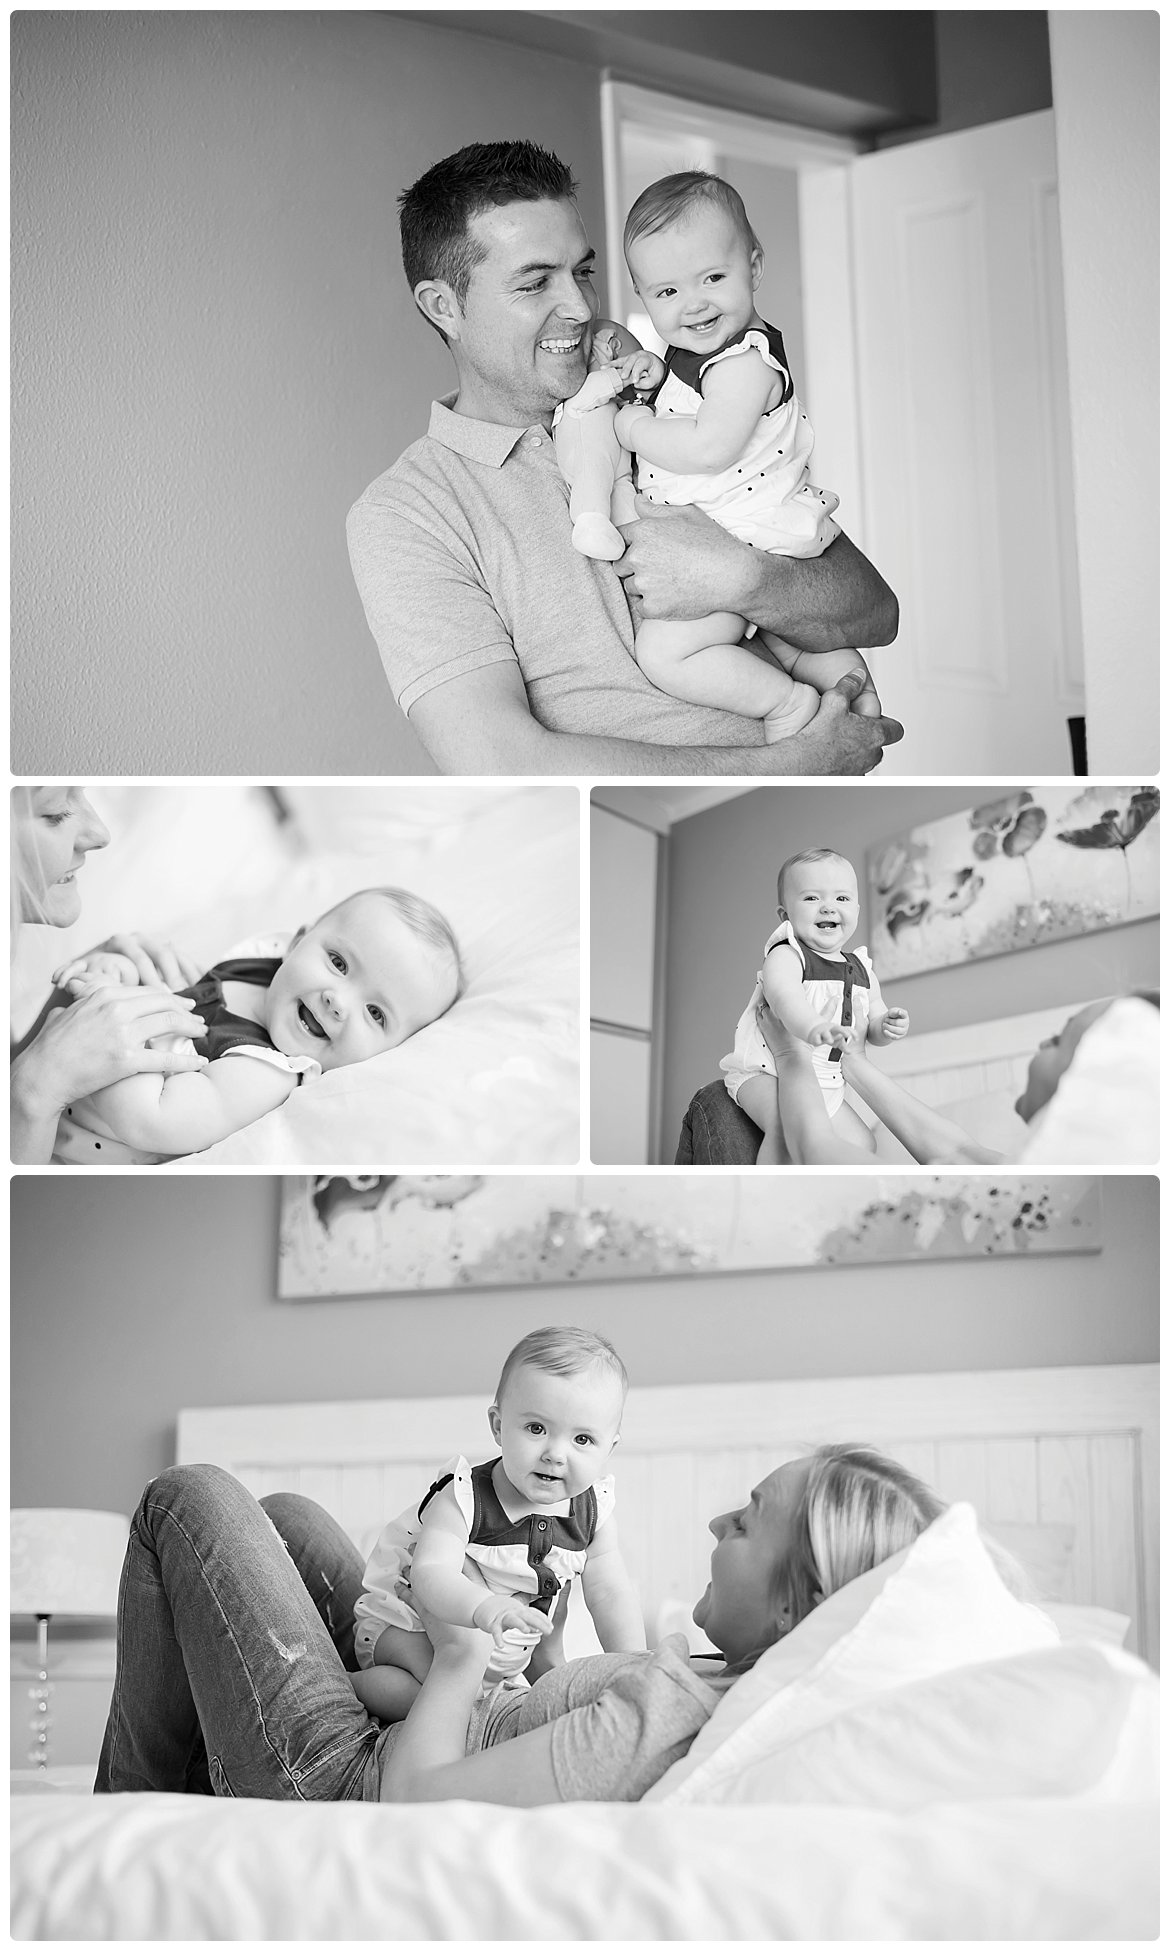 Cape_town_family_photographer_joanne_markland_photography_grace-006